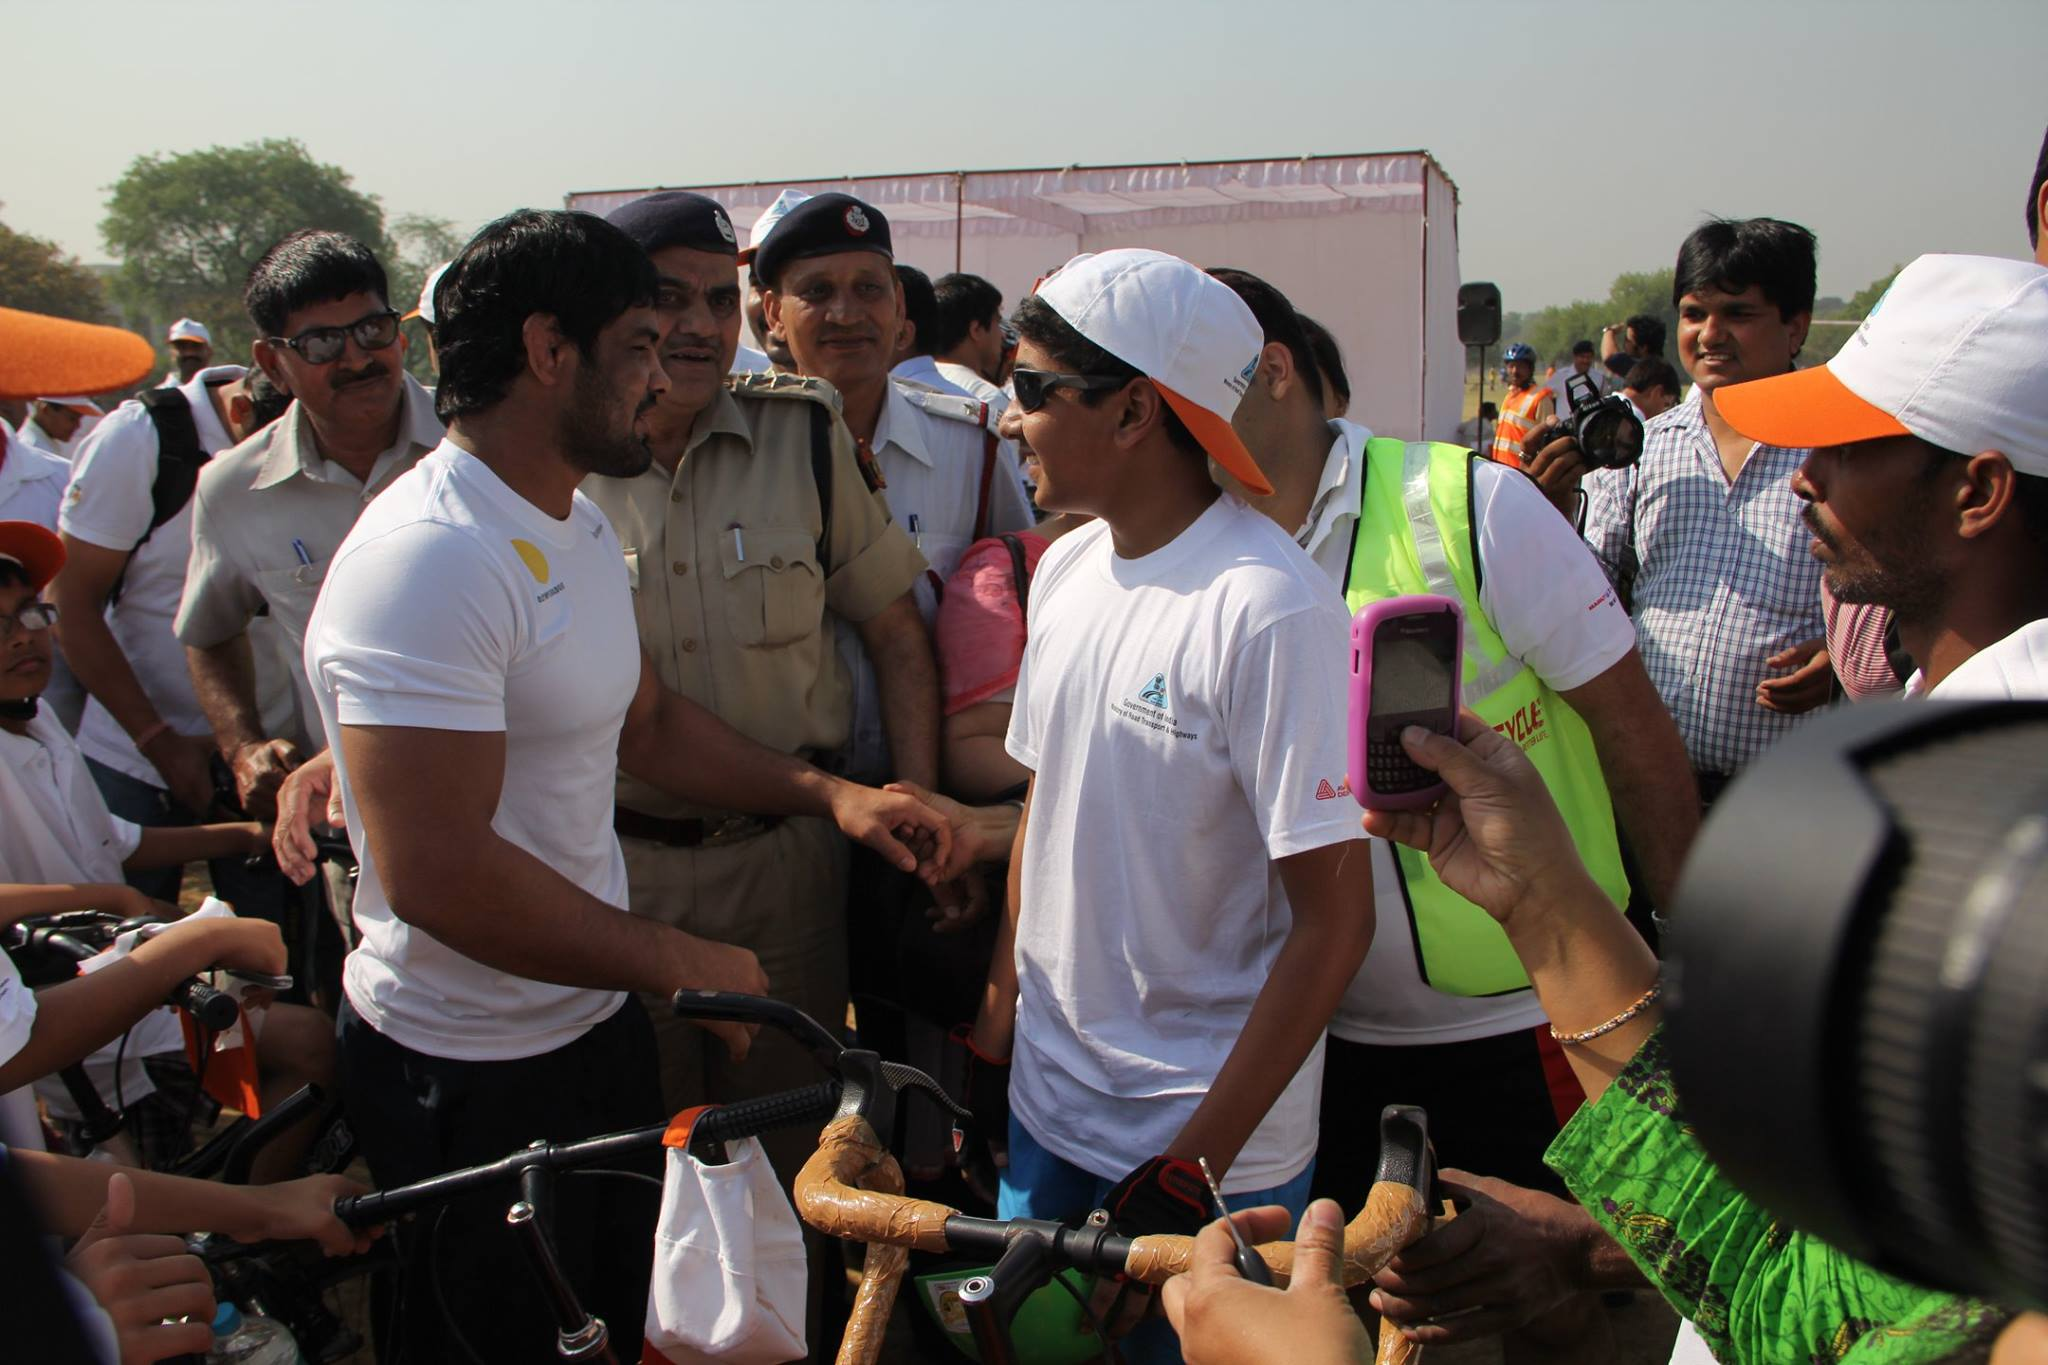 Road Safety Cyclothon - 1